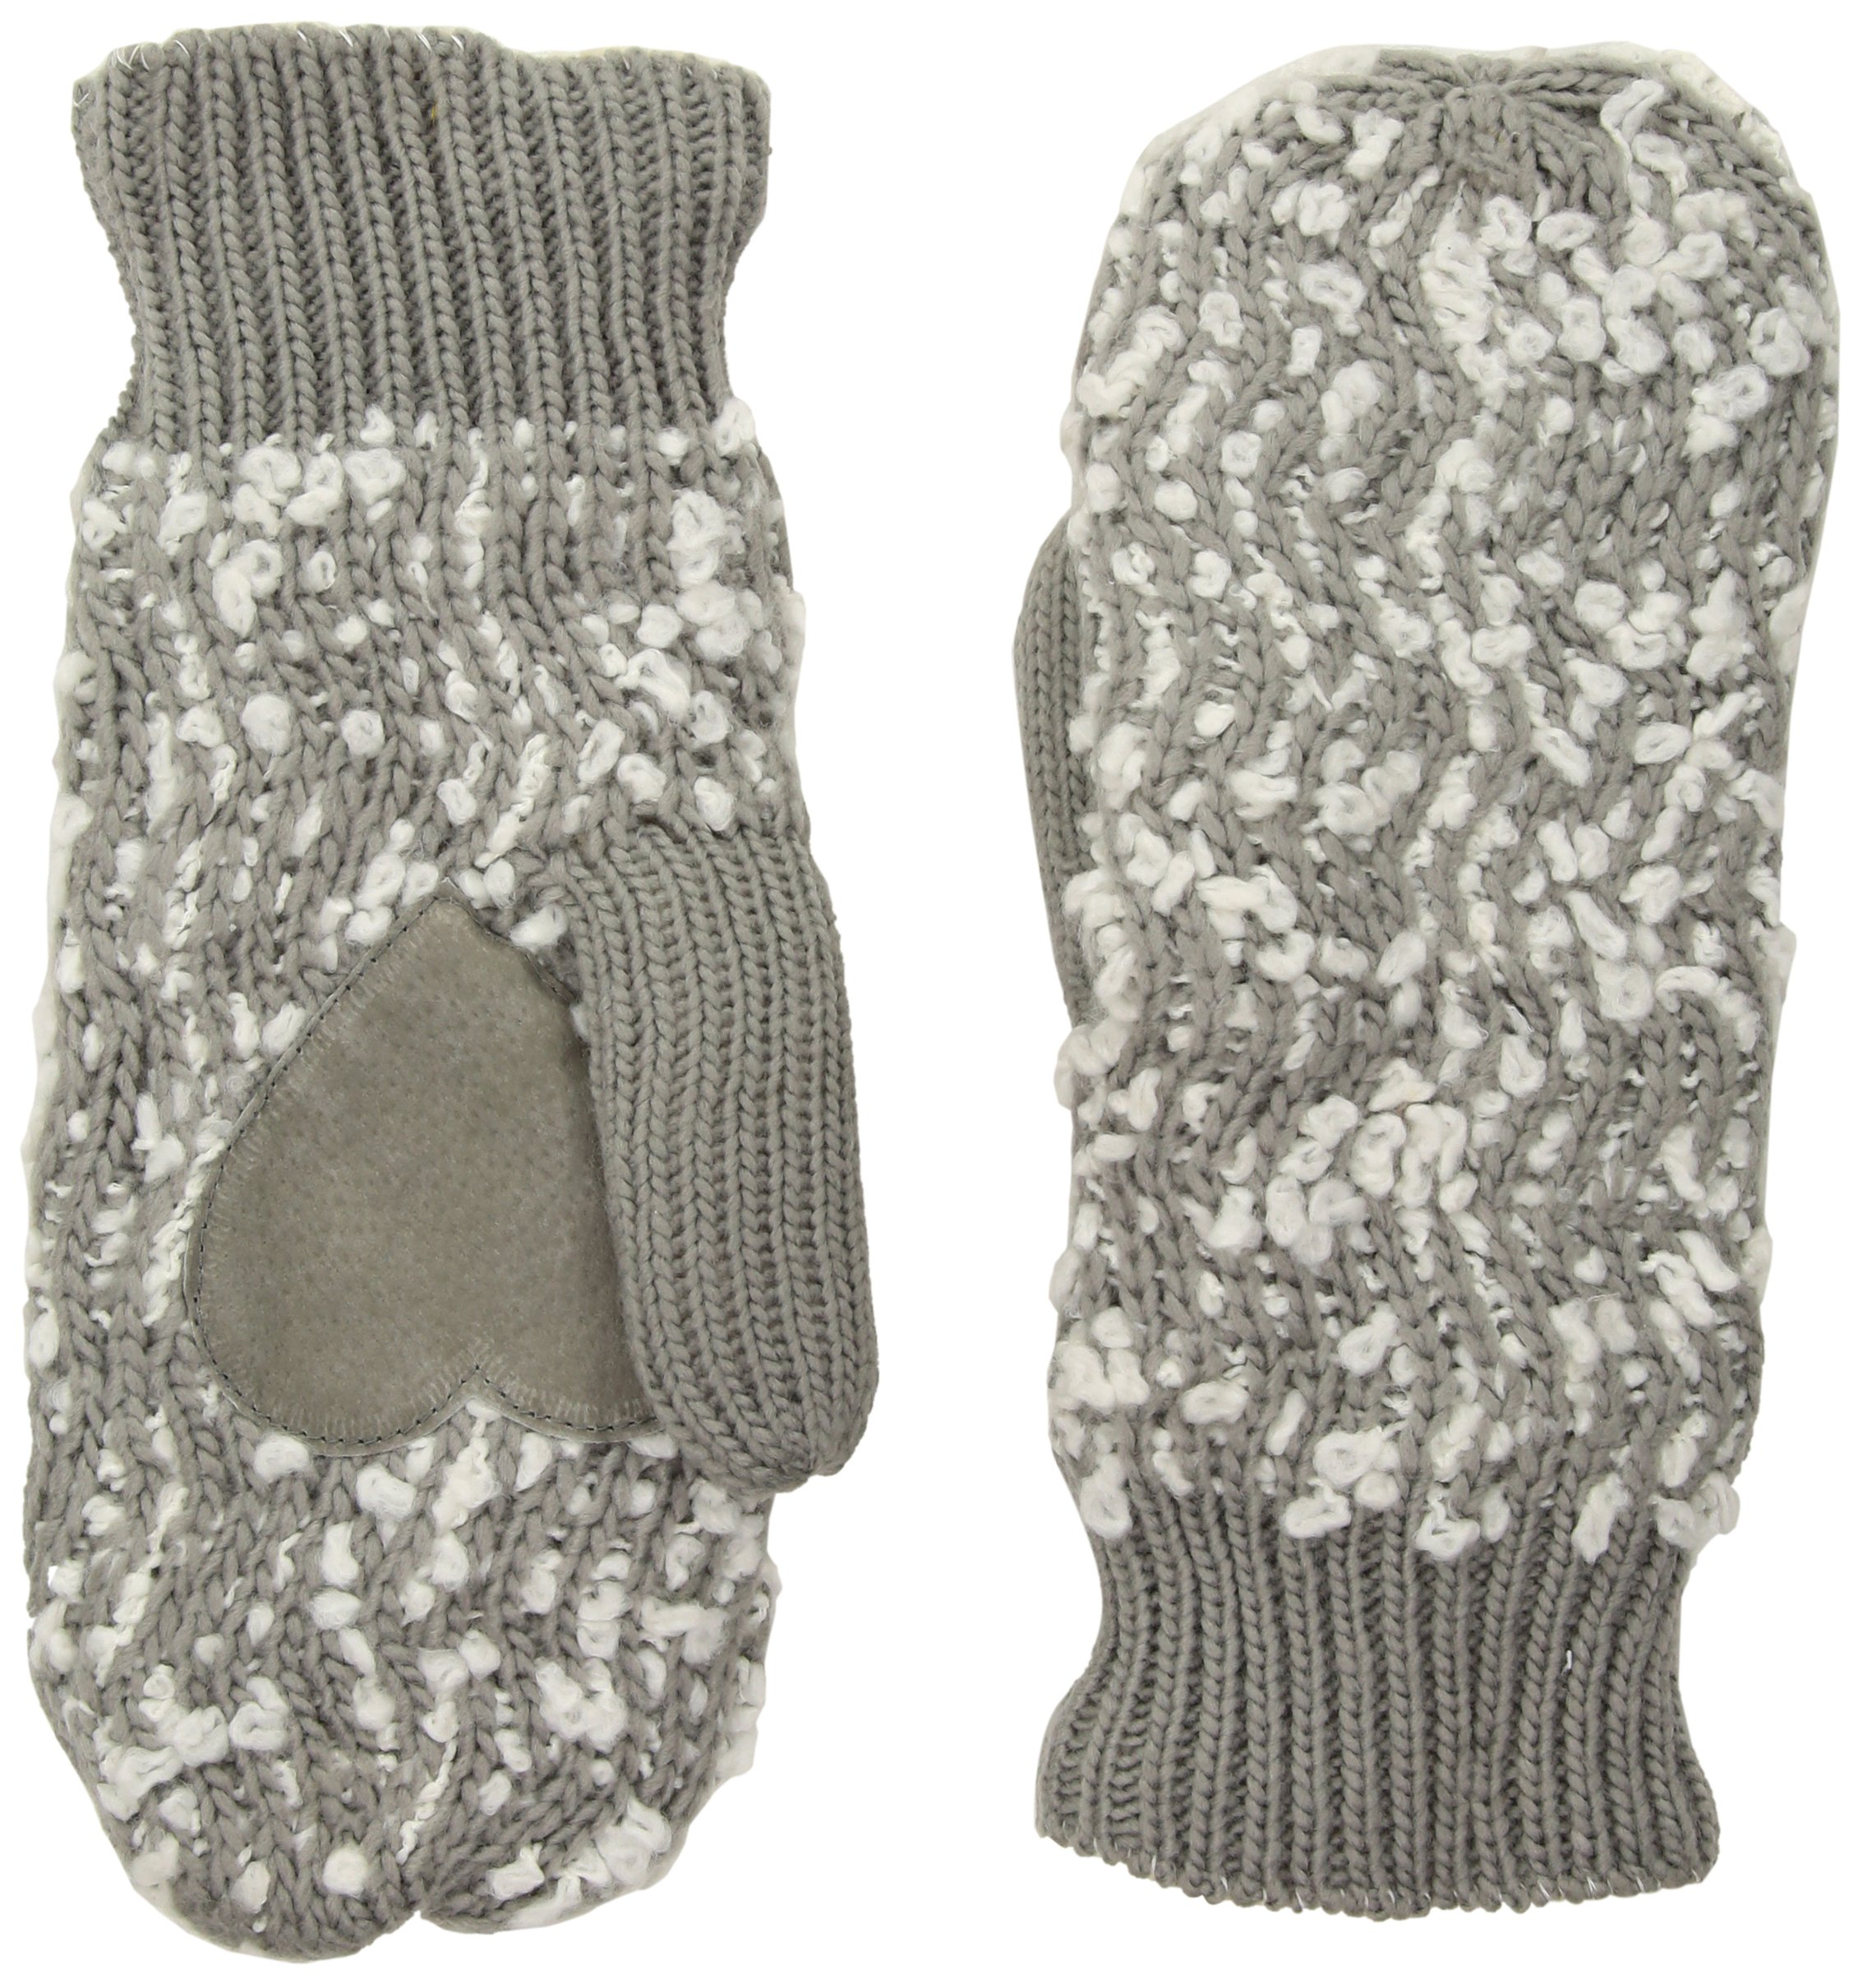 Isotoner Women's Chunky Cable Knit Sherpasoft Mittens, Chrome, One Size